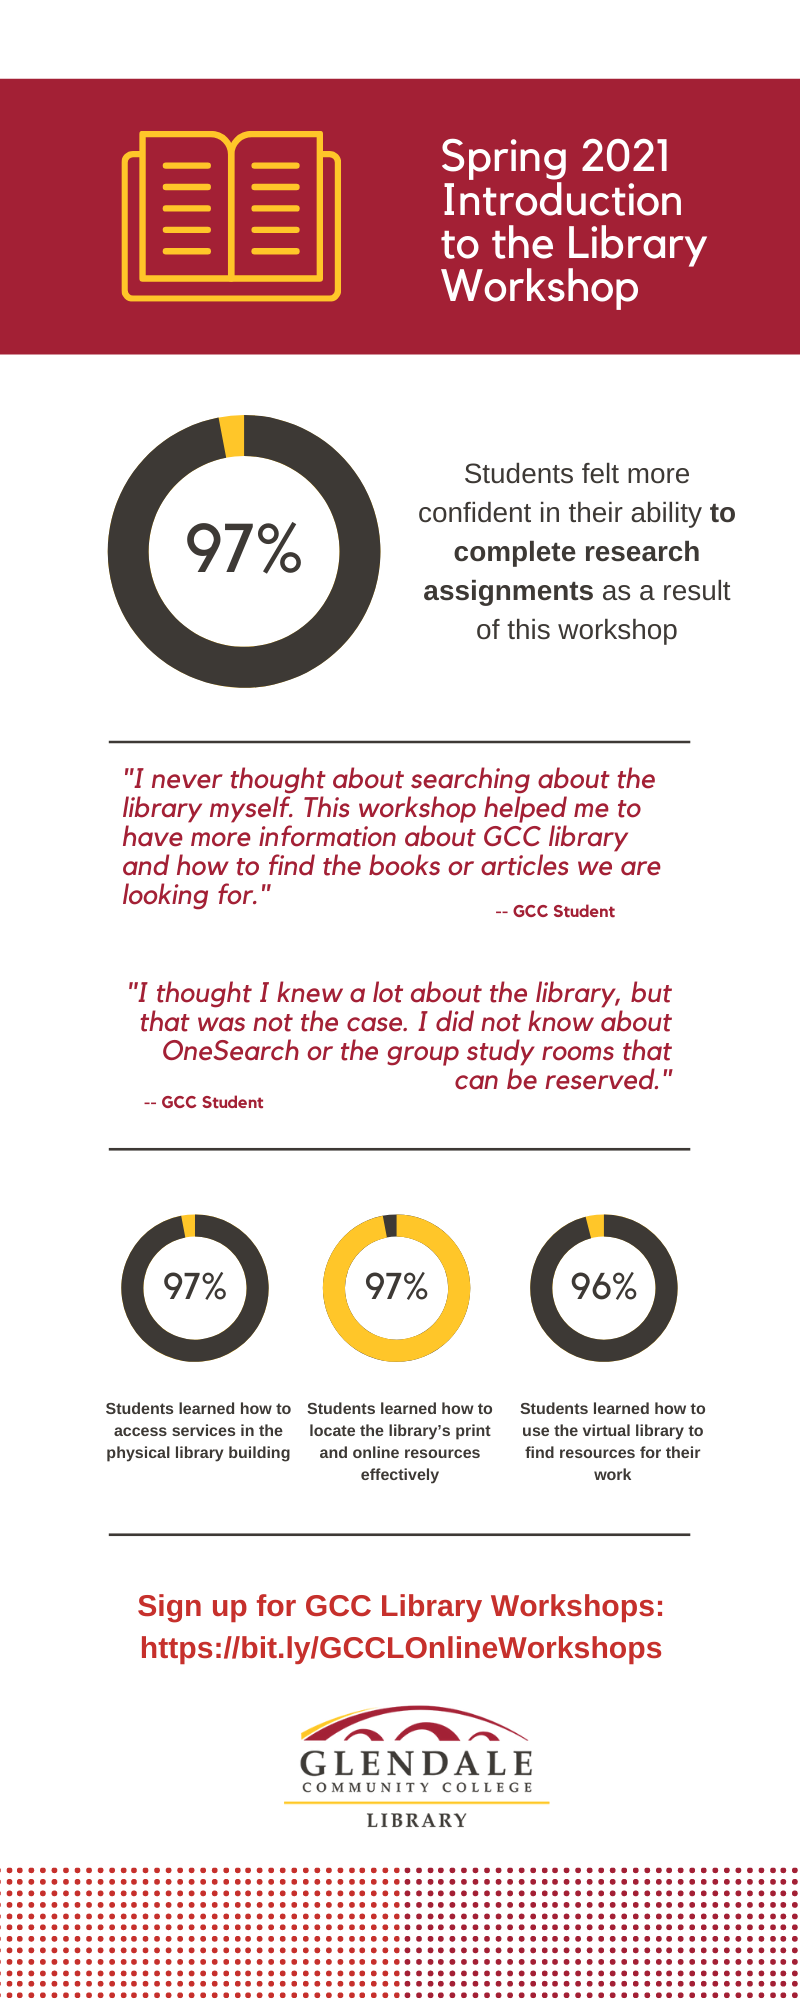 spring 2021 intro to library infographic